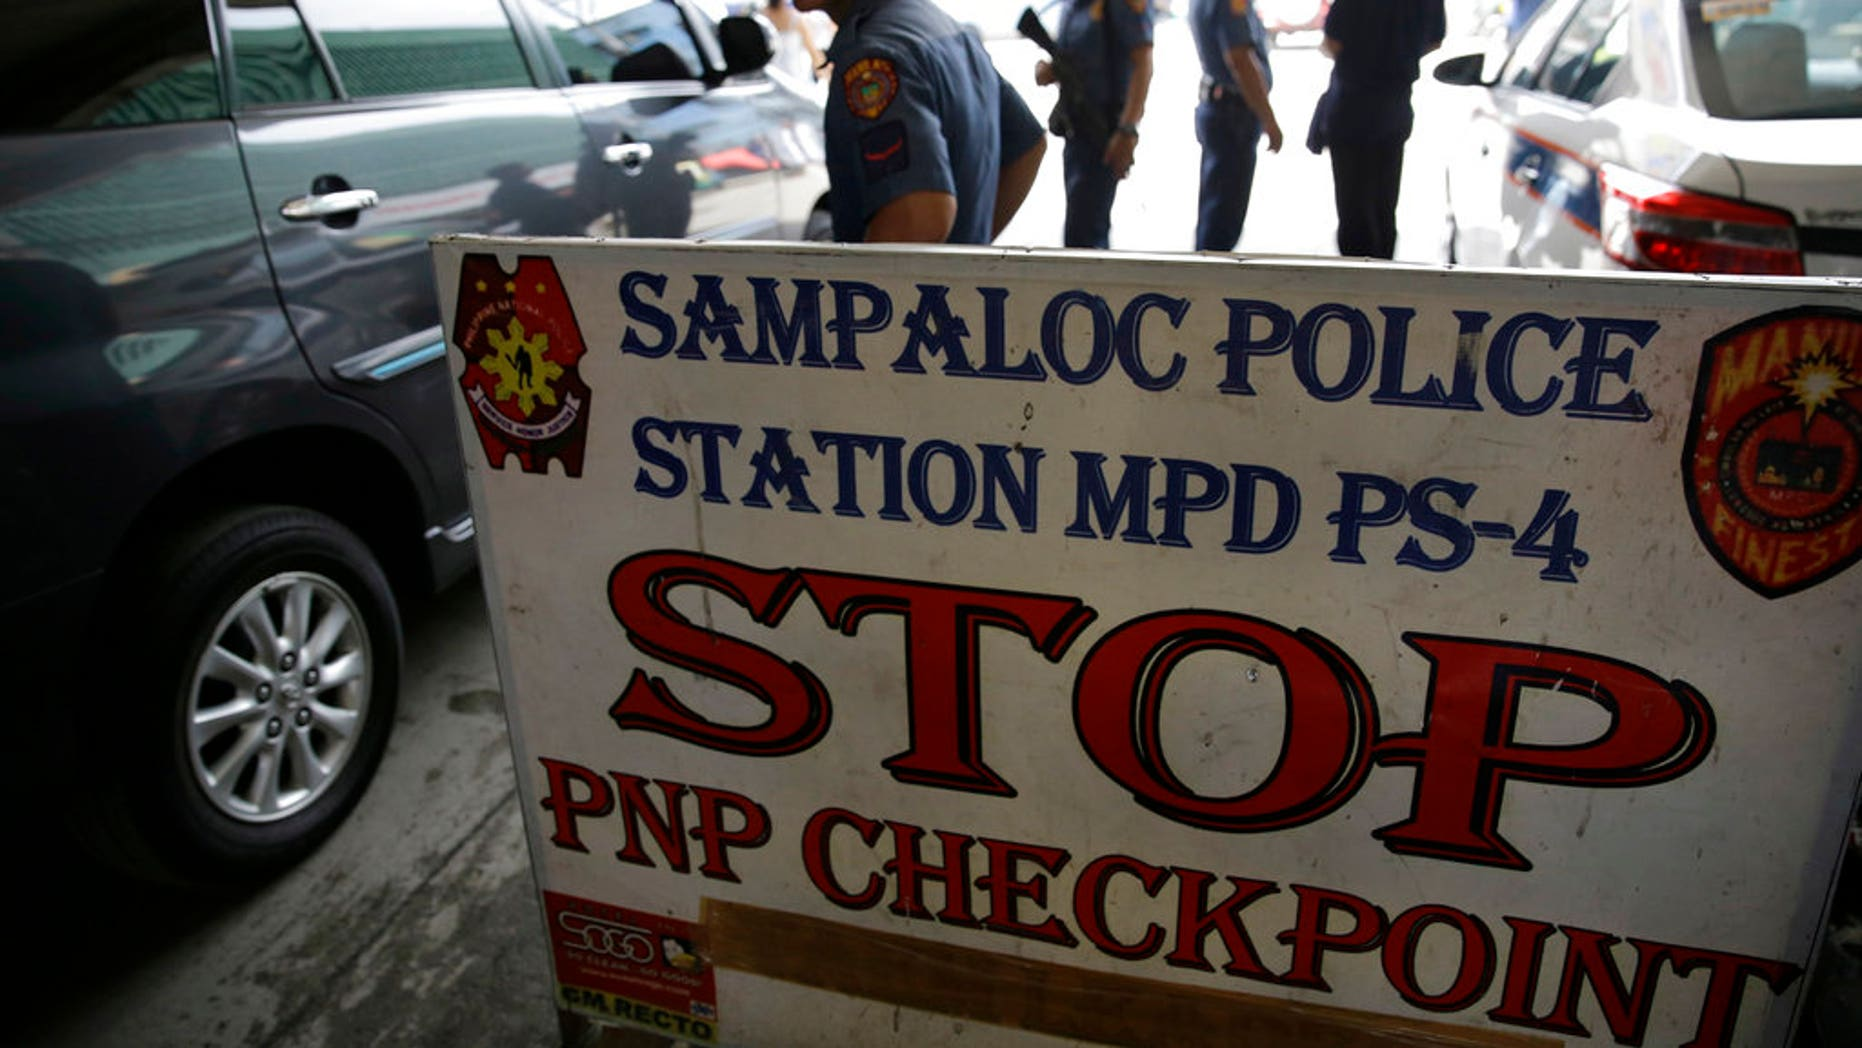 Policemen watches vehicles at a checkpoint in Manila, Philippines, Wednesday, May 24, 2017 as the Philippine National Police is placed under full alert status following the declaration of martial law in Mindanao southern Philippines. (Associated Press)